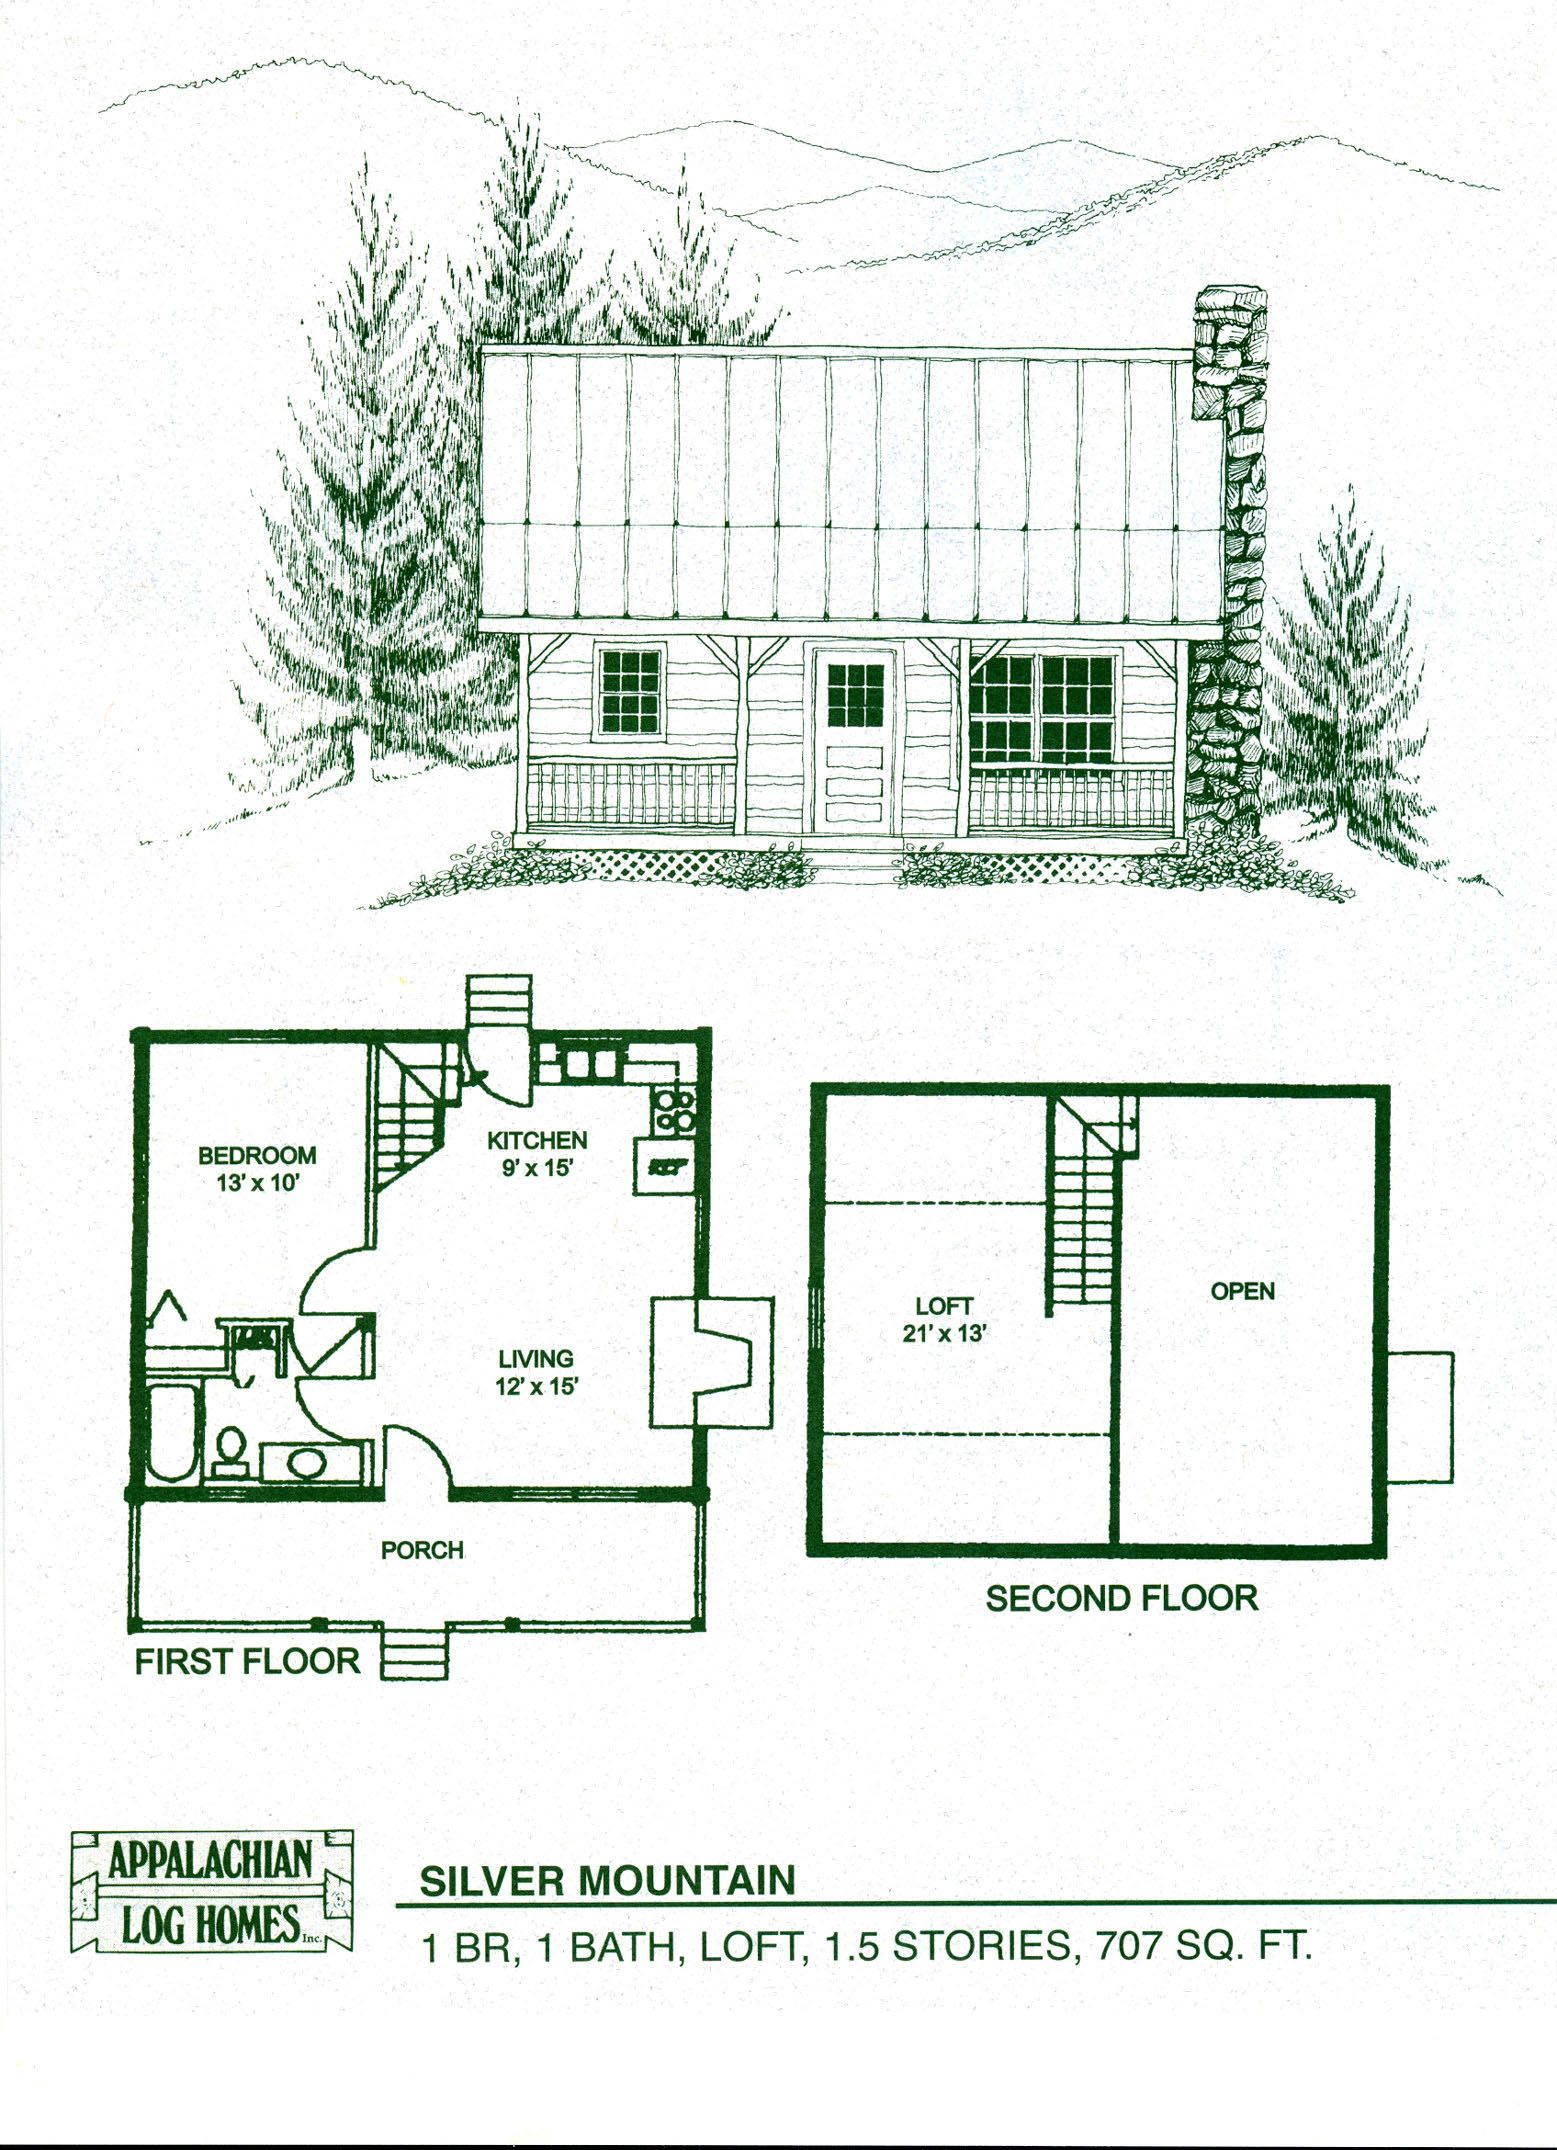 Charmant [Cabin Plans Small House Floor Log Simple With Loft Lrg] Simple Small House  Floor Plans With Loft Lrg Cabin Simple Cabin Floor Plans Small House Lrg  With ...